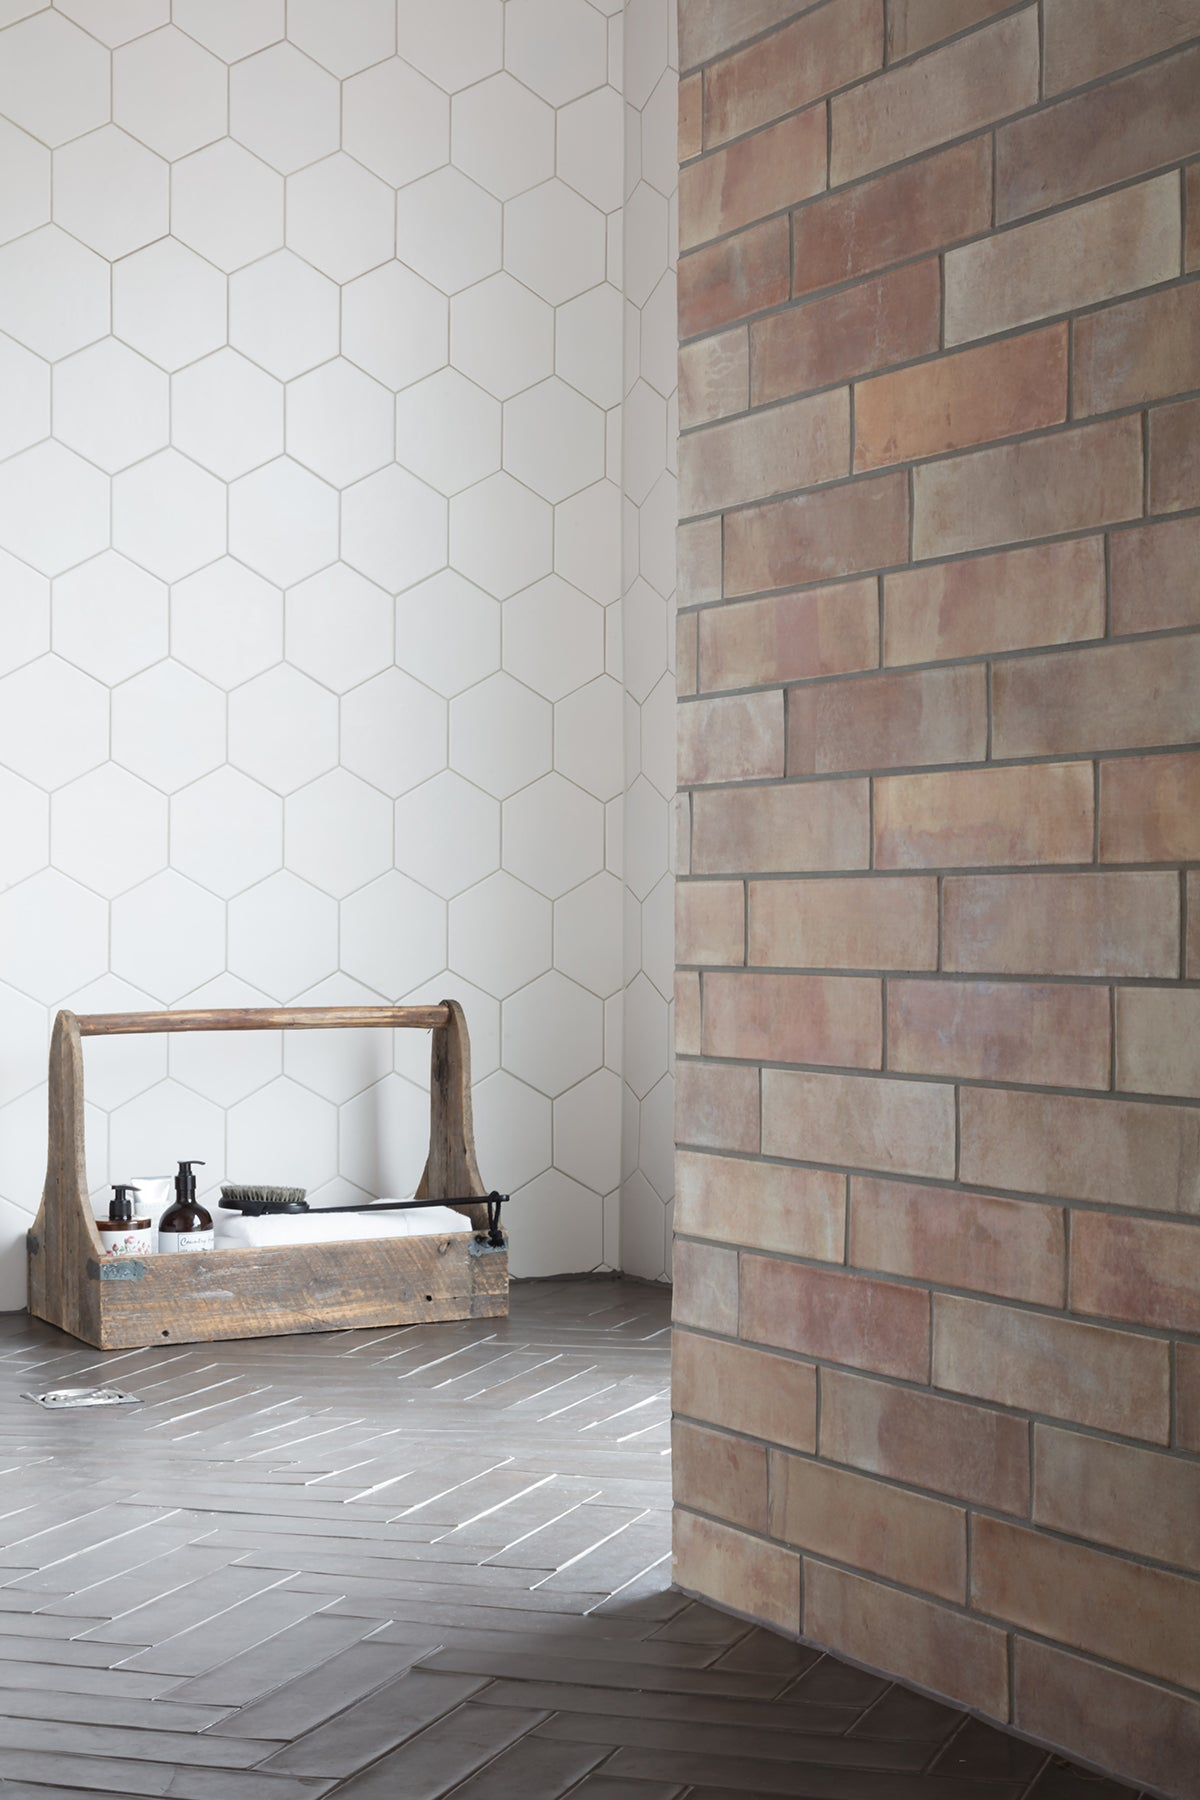 Brick Effect Wall & Porcelain Floor Tiles